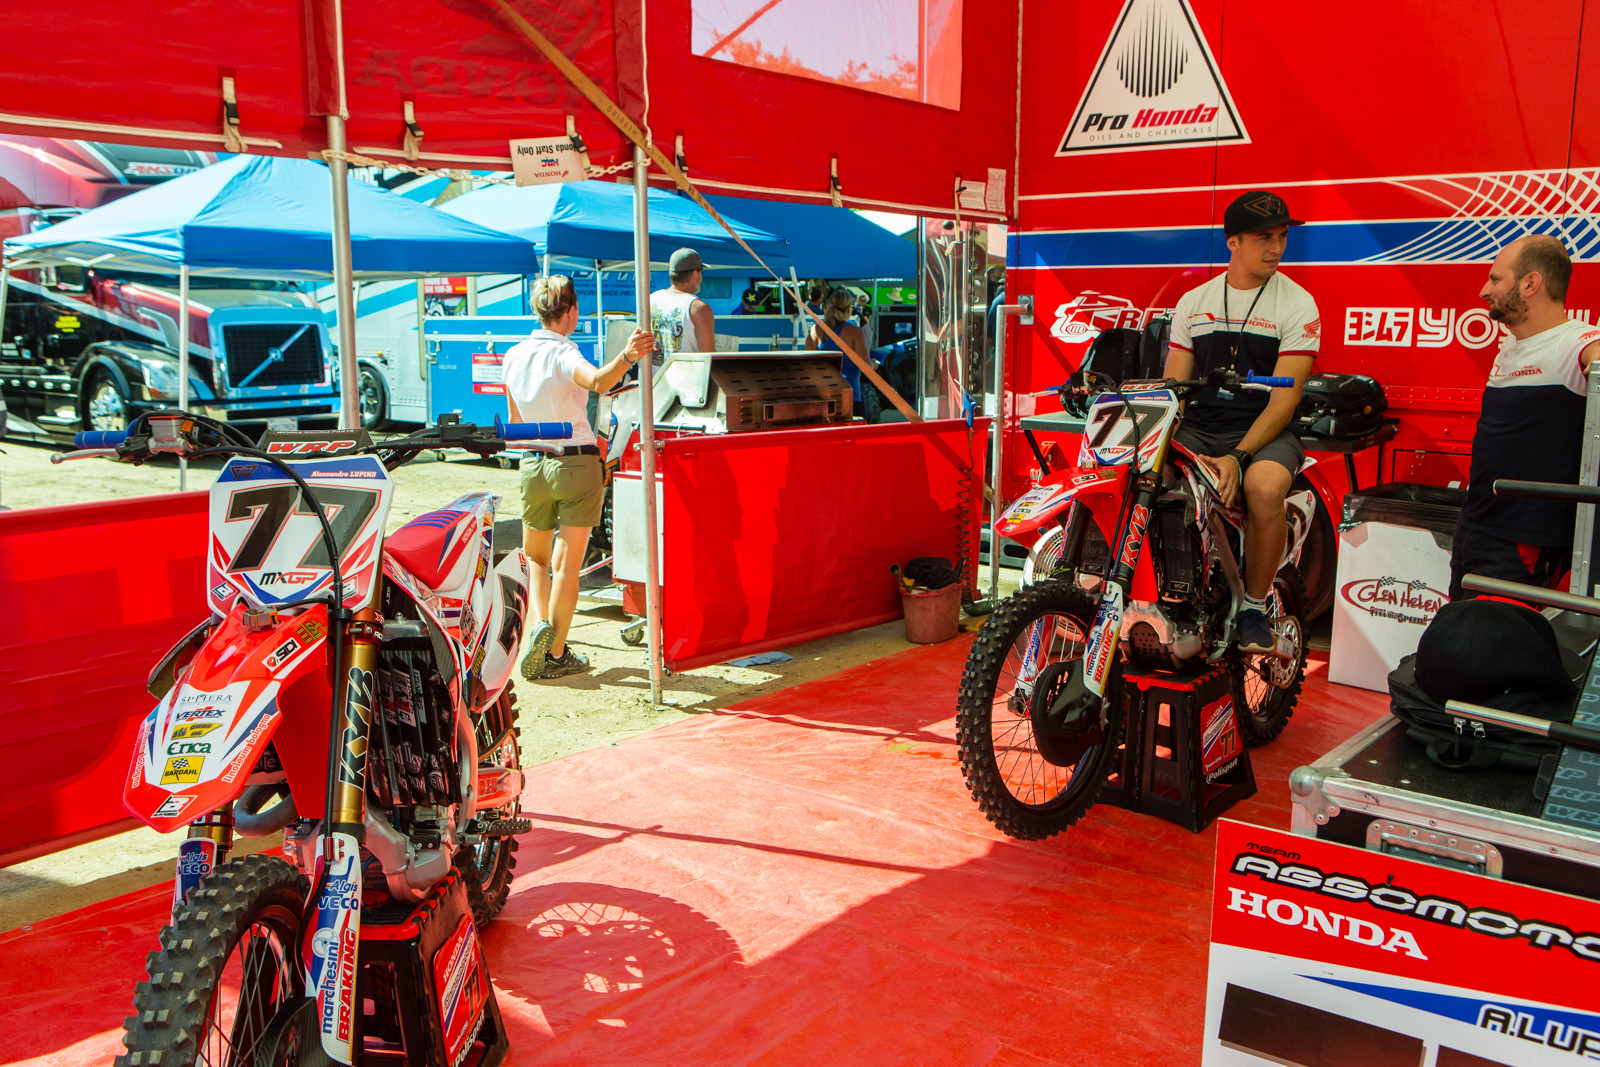 Alessandro Lupino's Assomotor/Honda Red Moto CRF450R - Vital MX Pit Bits: 2016 MXGP of USA - Motocross Pictures - Vital MX